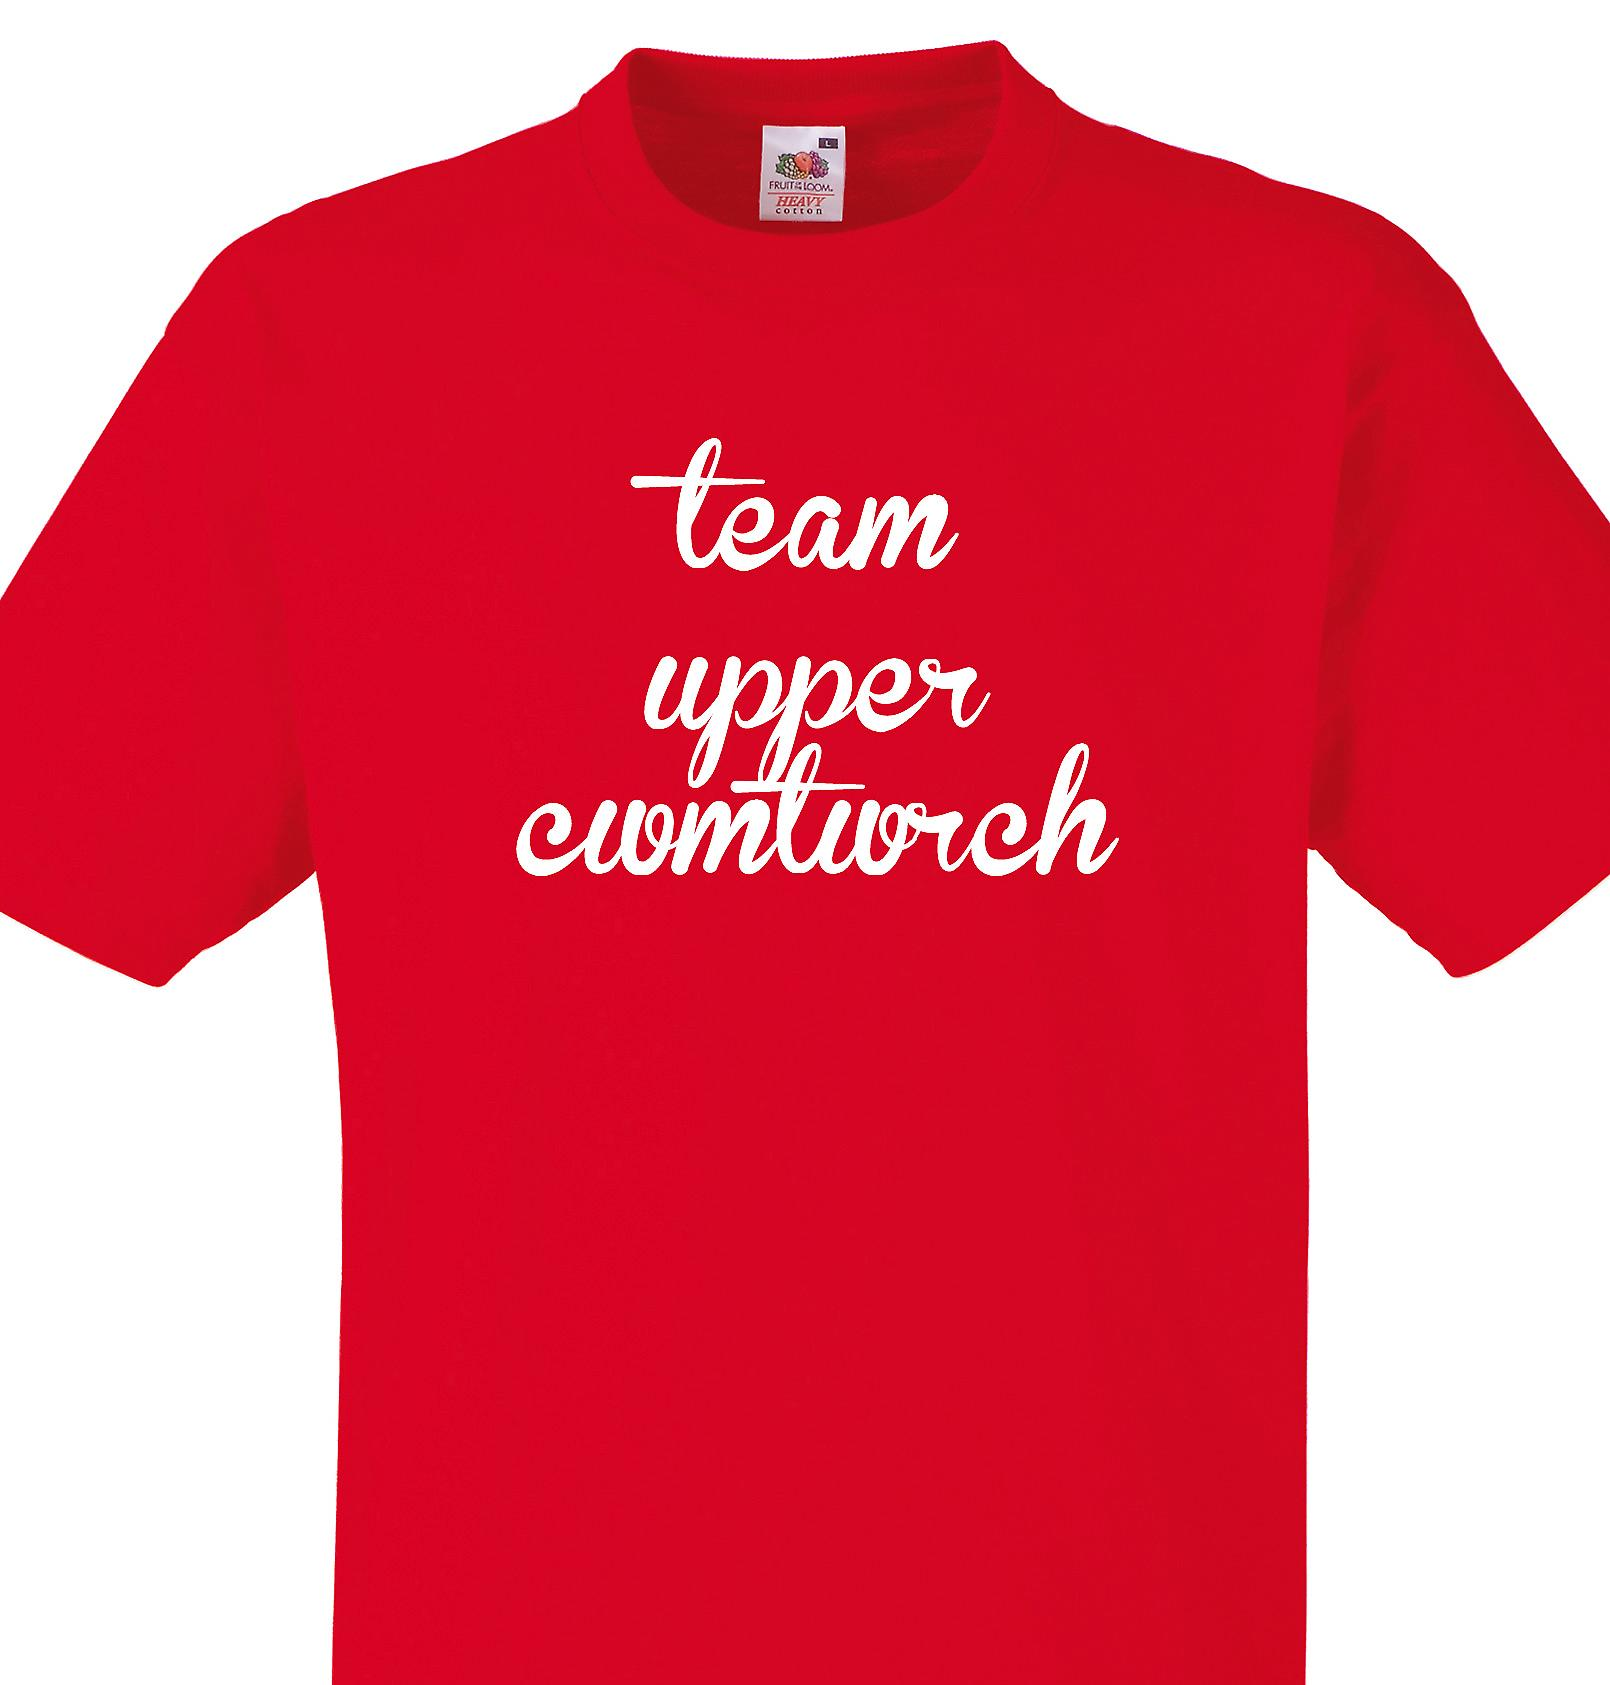 Team Upper cwmtwrch Red T shirt